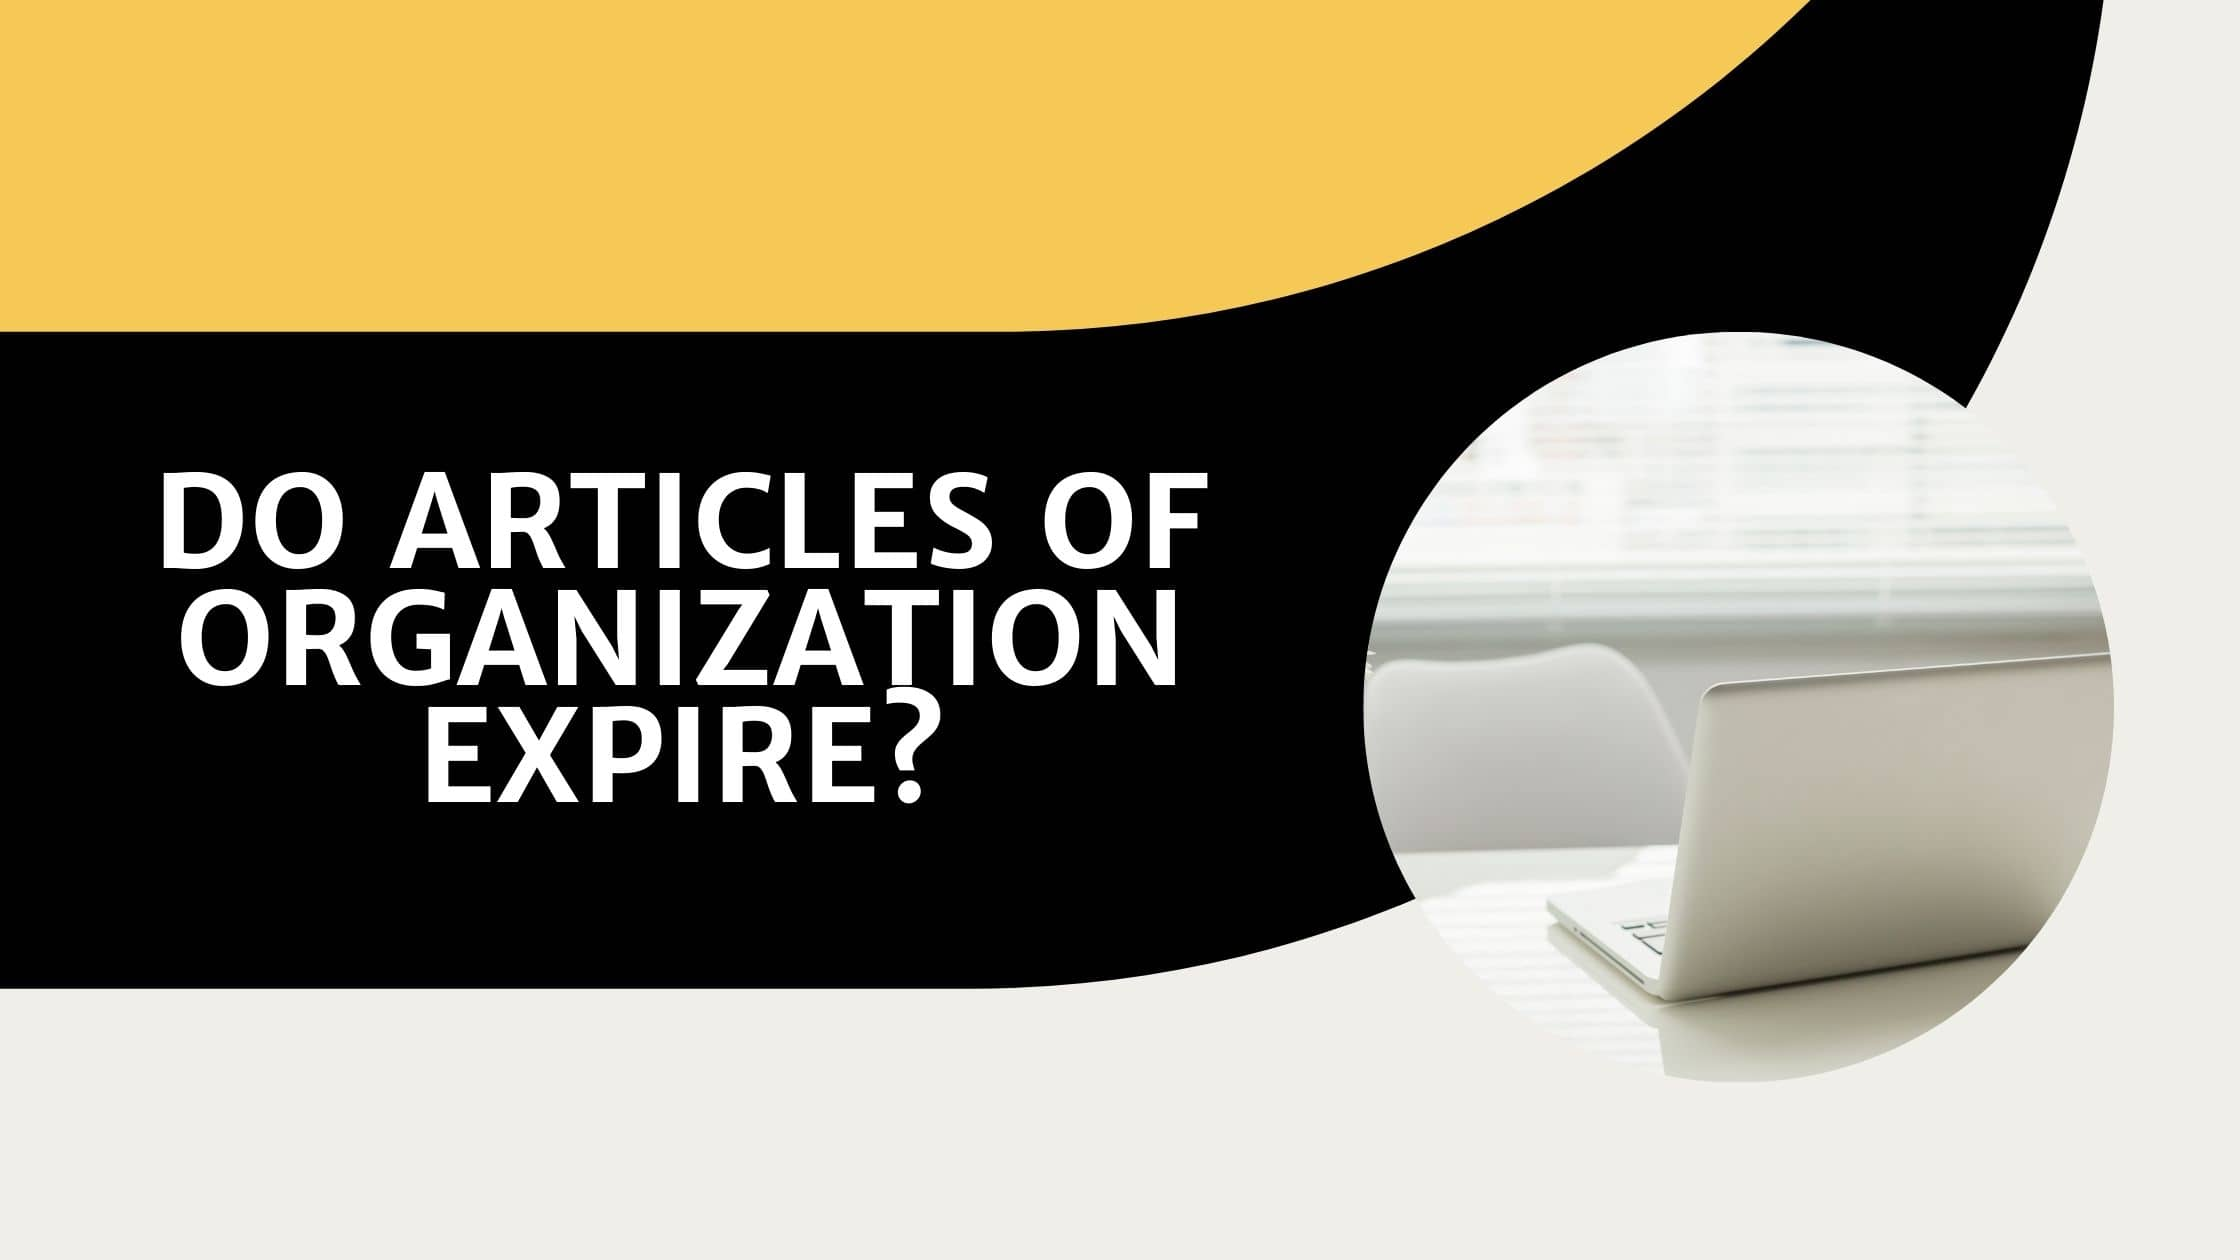 Do Articles of Organization Expire?